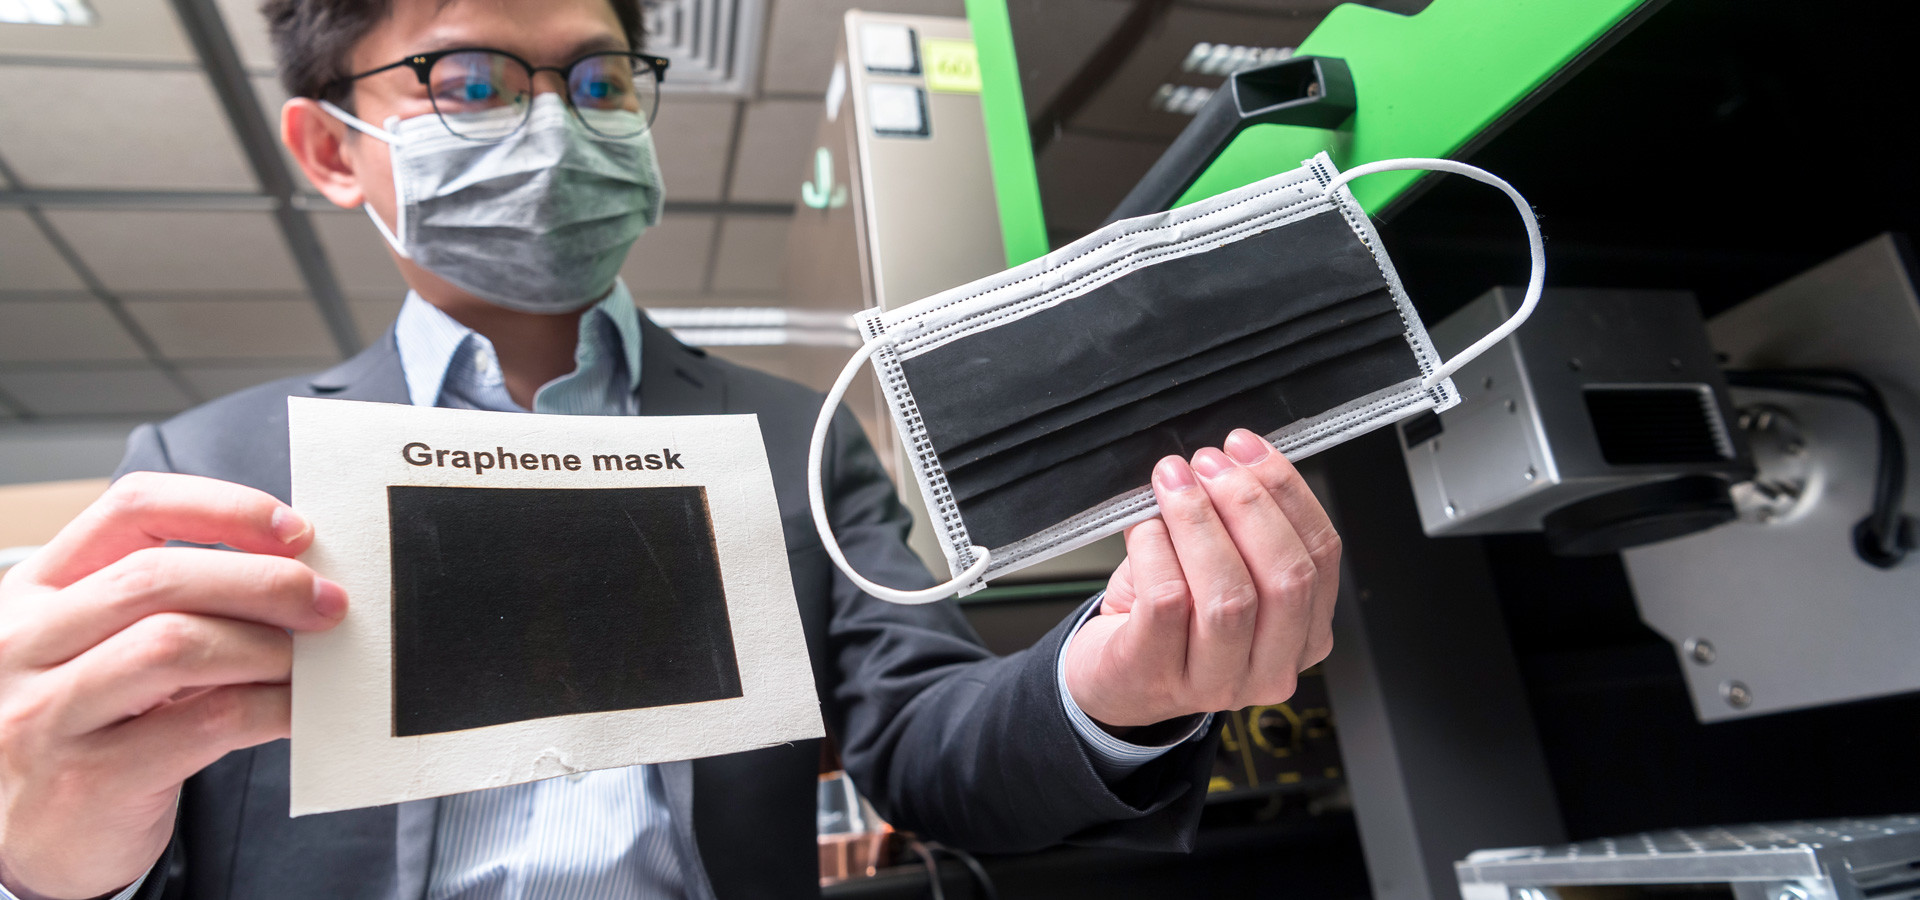 Anti-bacterial graphene masks